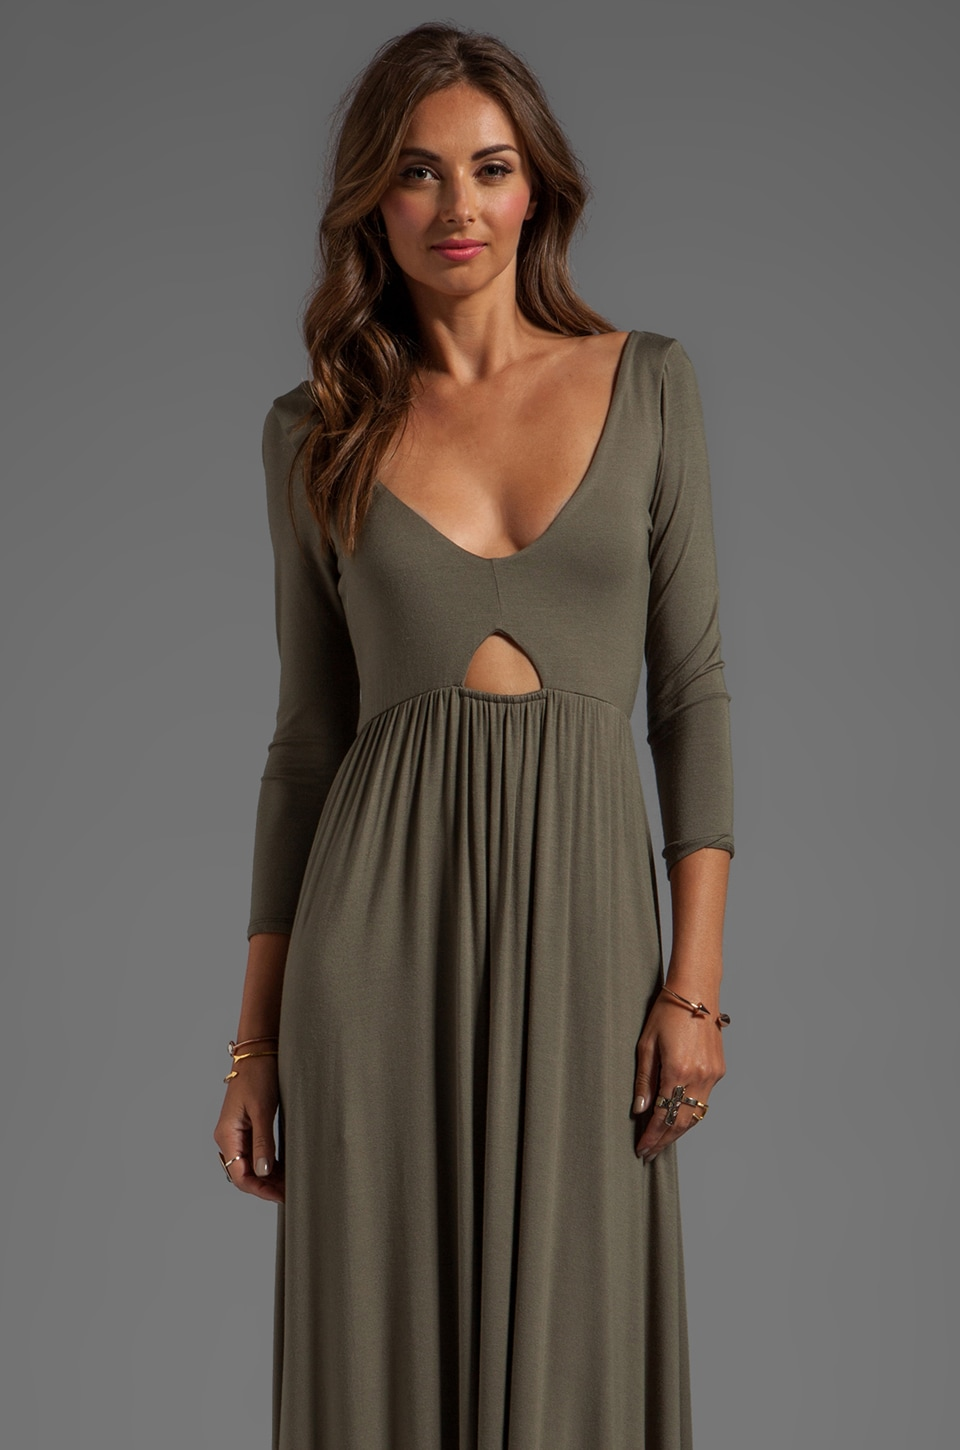 Rachel Pally Dakota Maxi Dress in Thyme